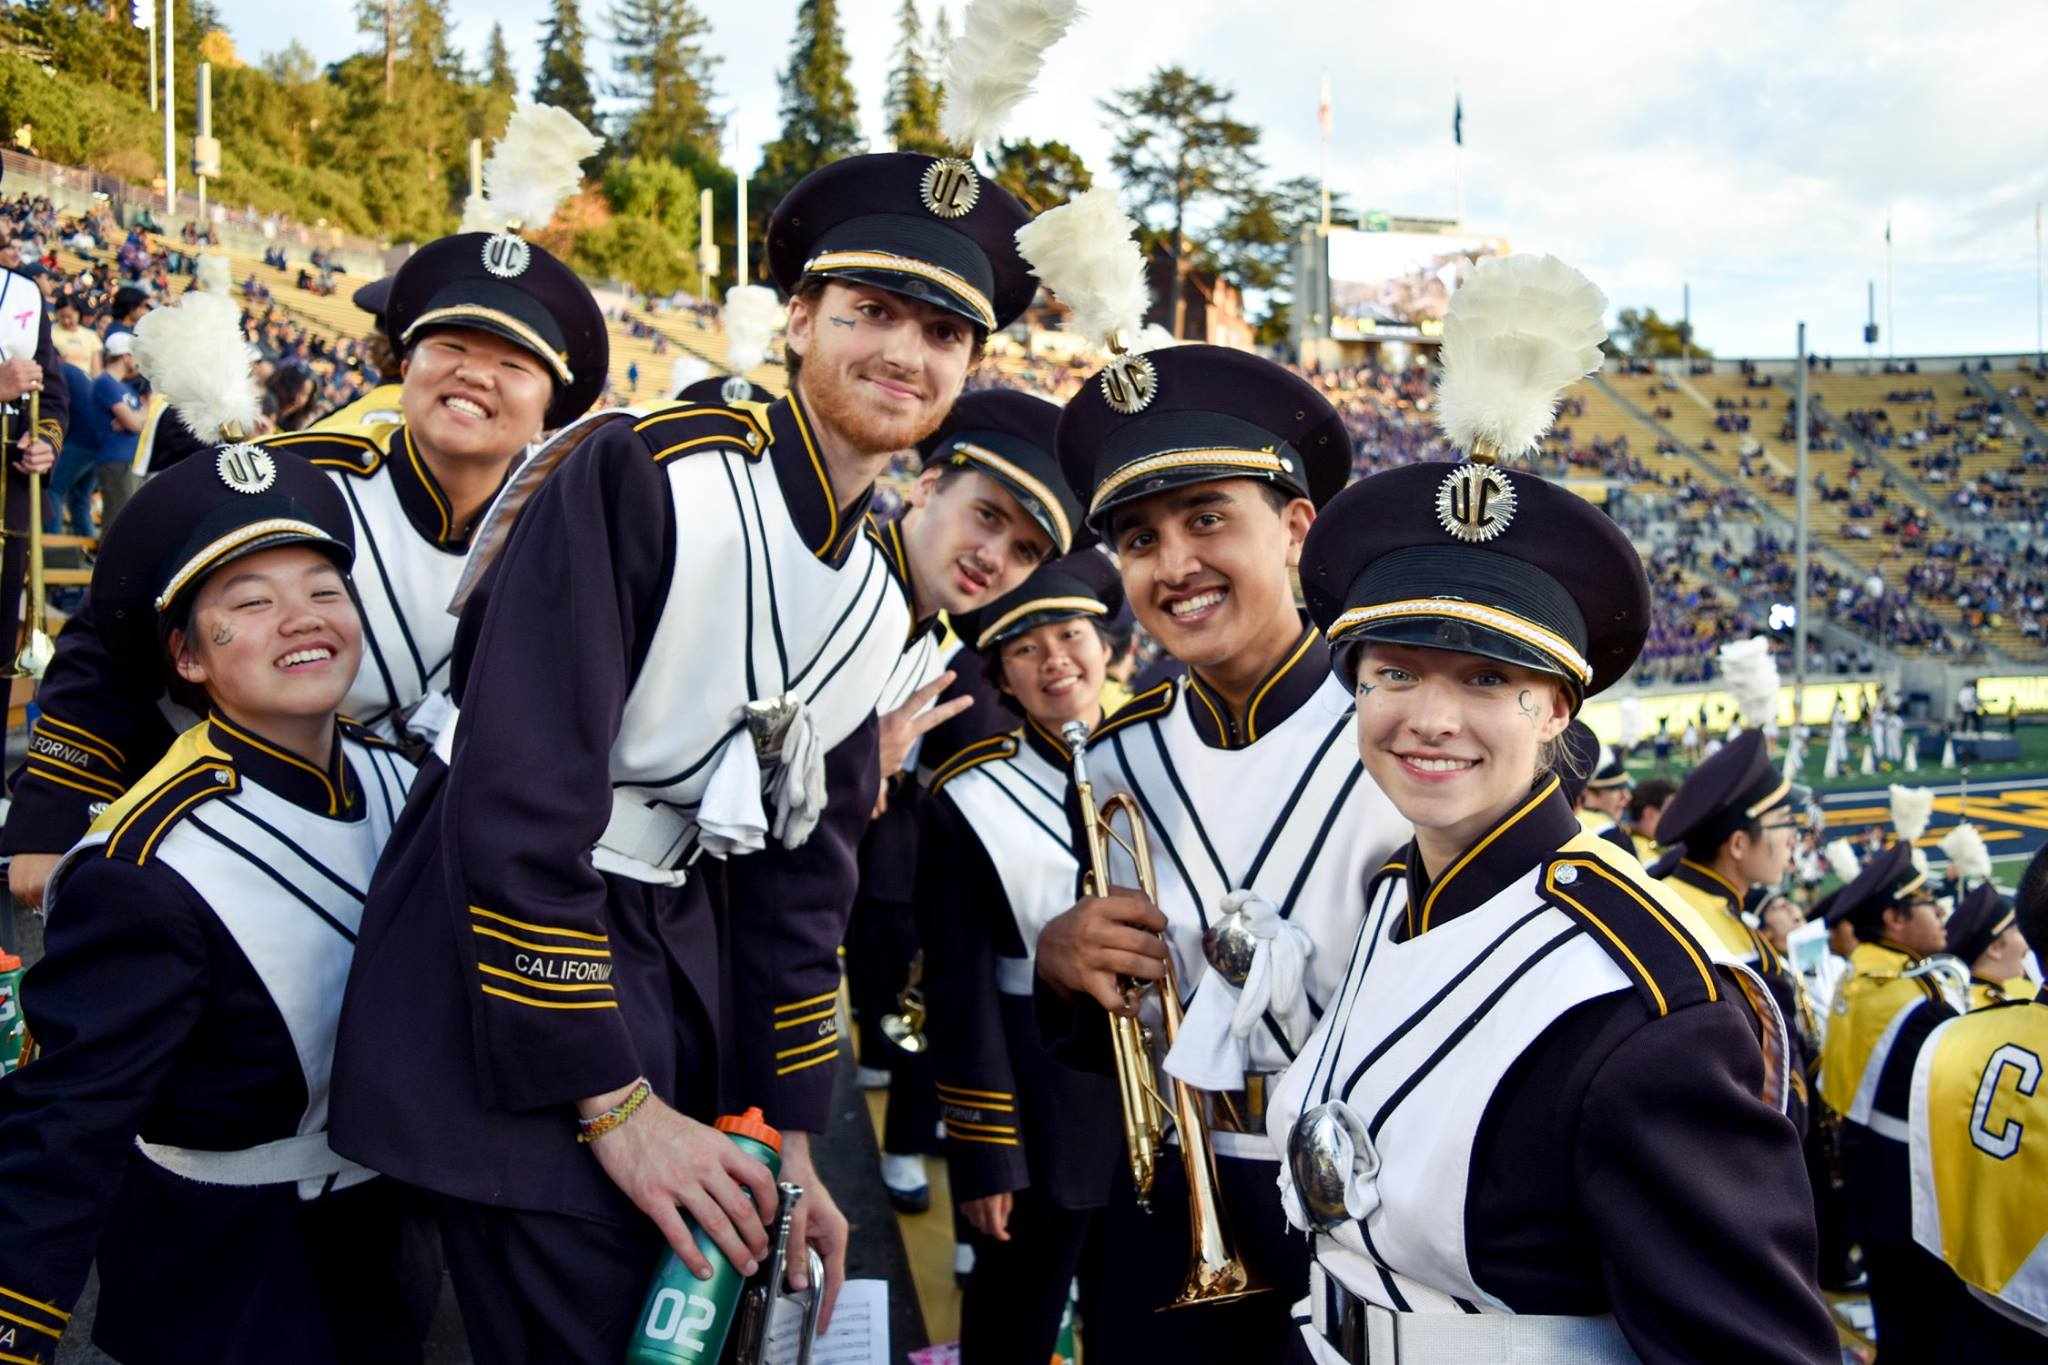 University of California Marching Band – The Pride of California